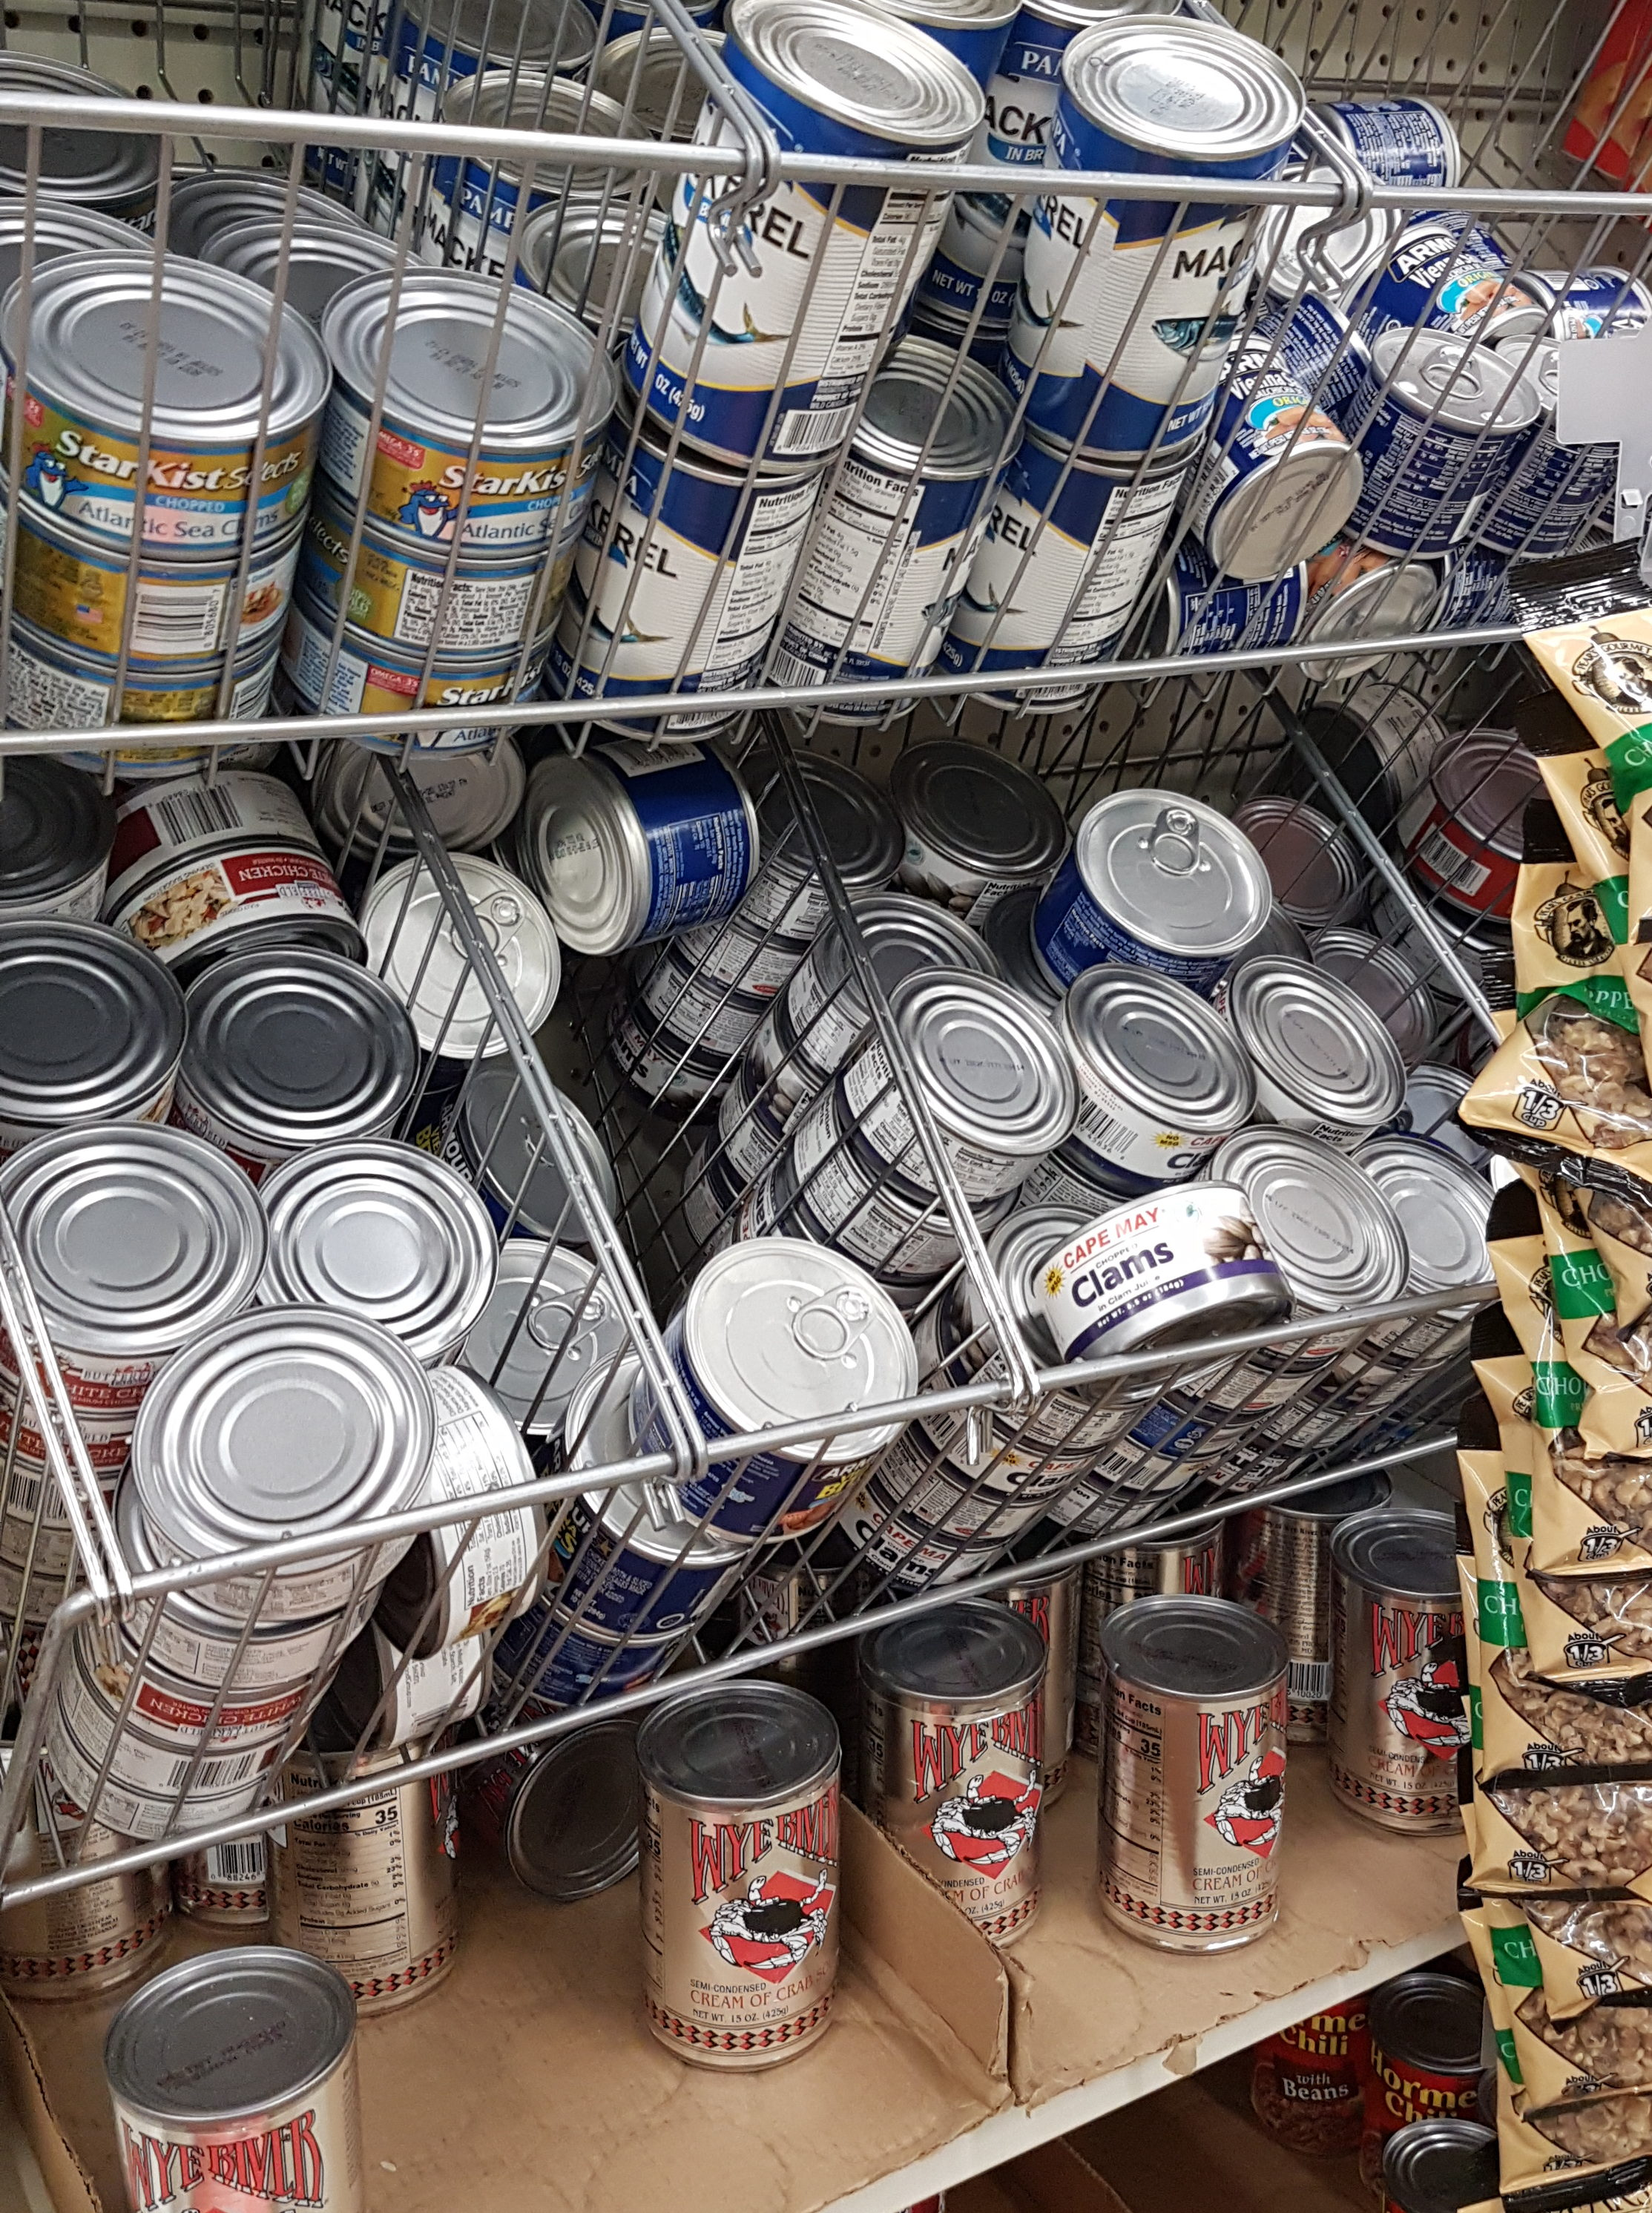 Dollar Tree shelves canned tuna and meats